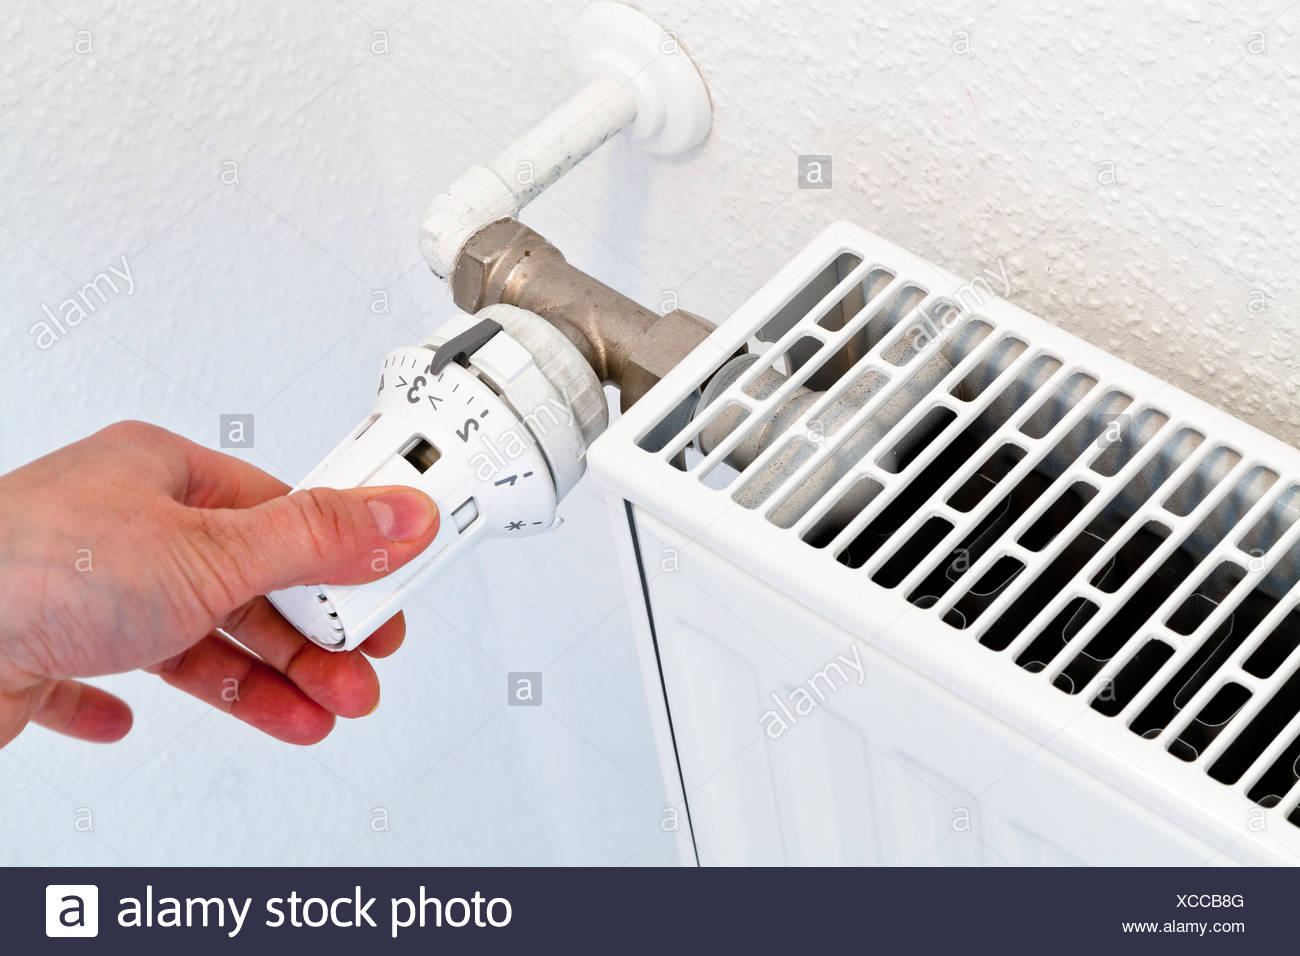 Warming hand heater radiator stock photos warming hand for Heat setting for home